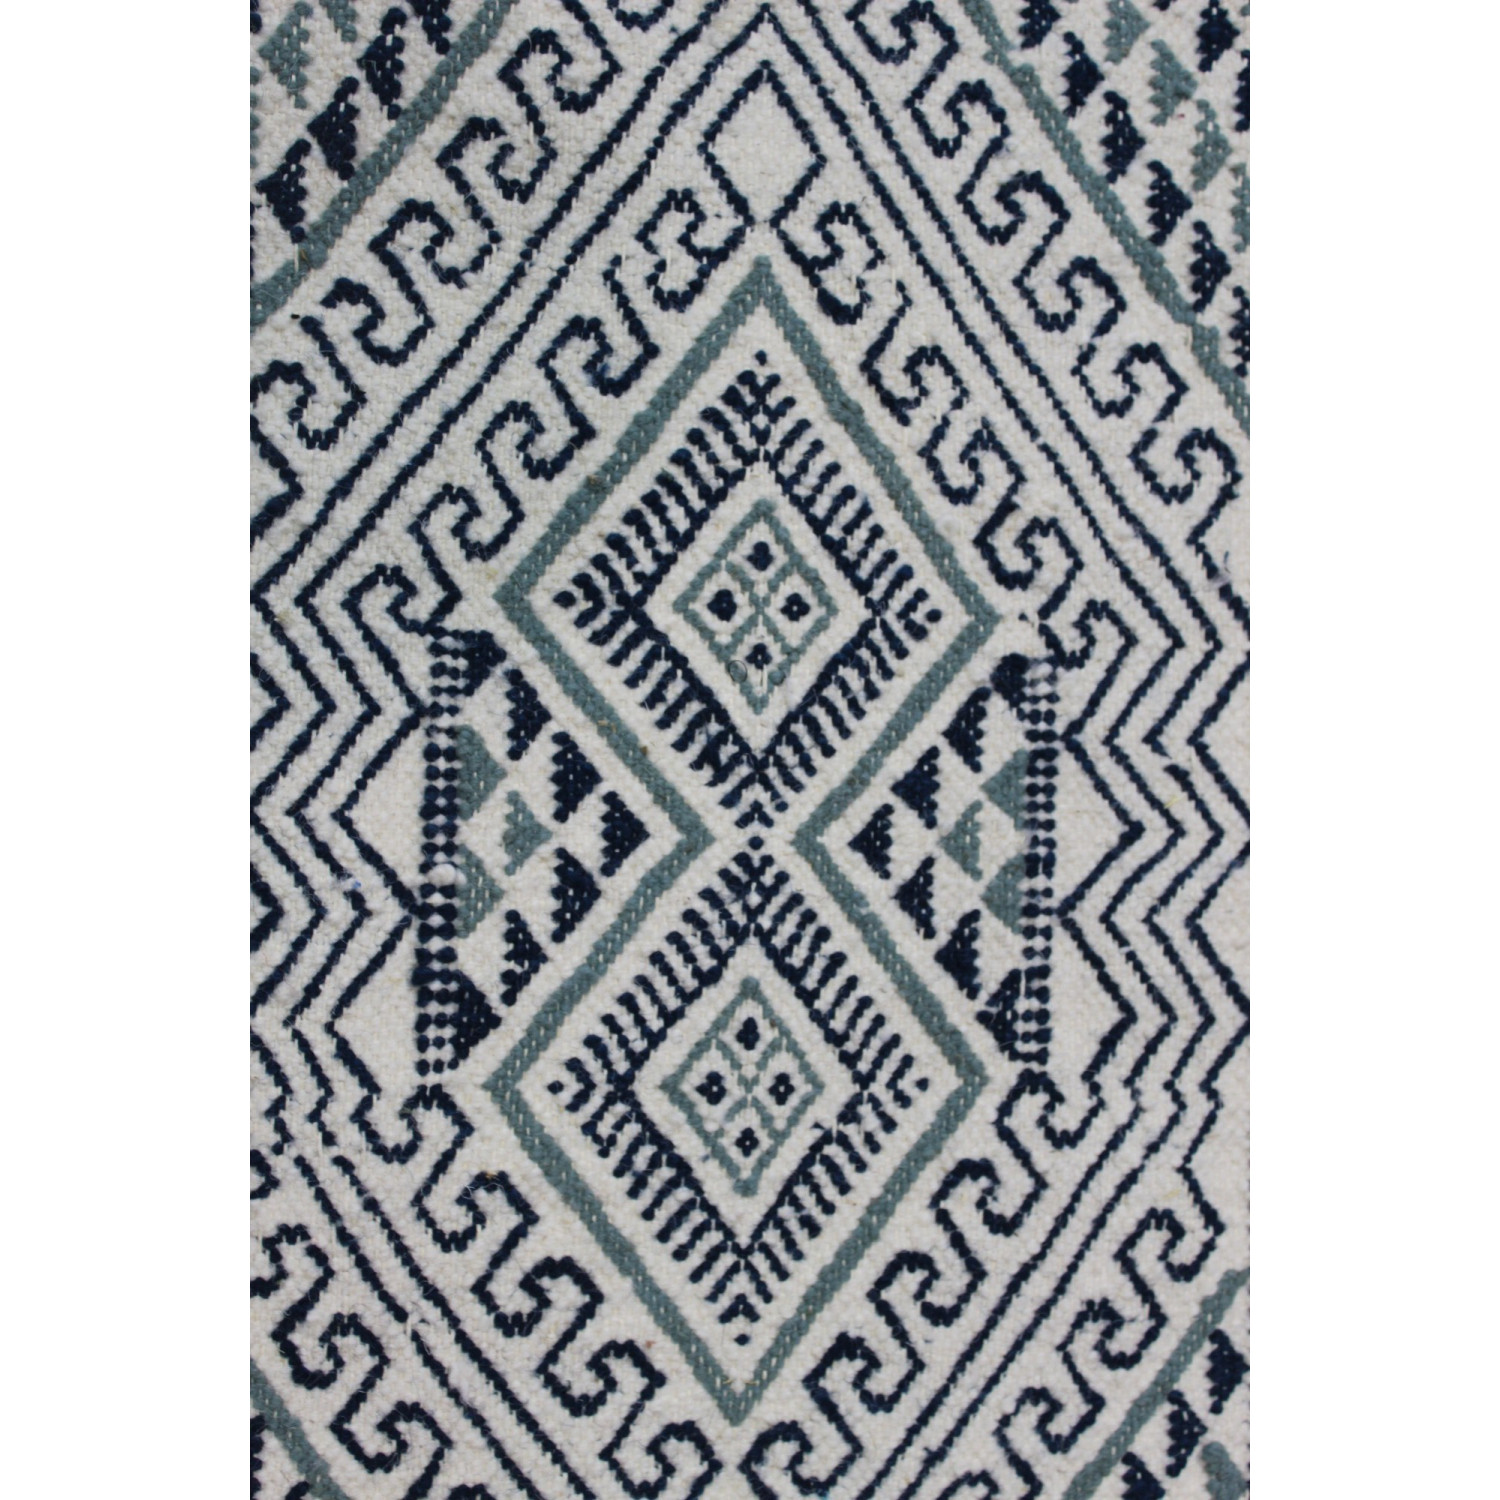 tapis blanc motif nuance bleu. Black Bedroom Furniture Sets. Home Design Ideas